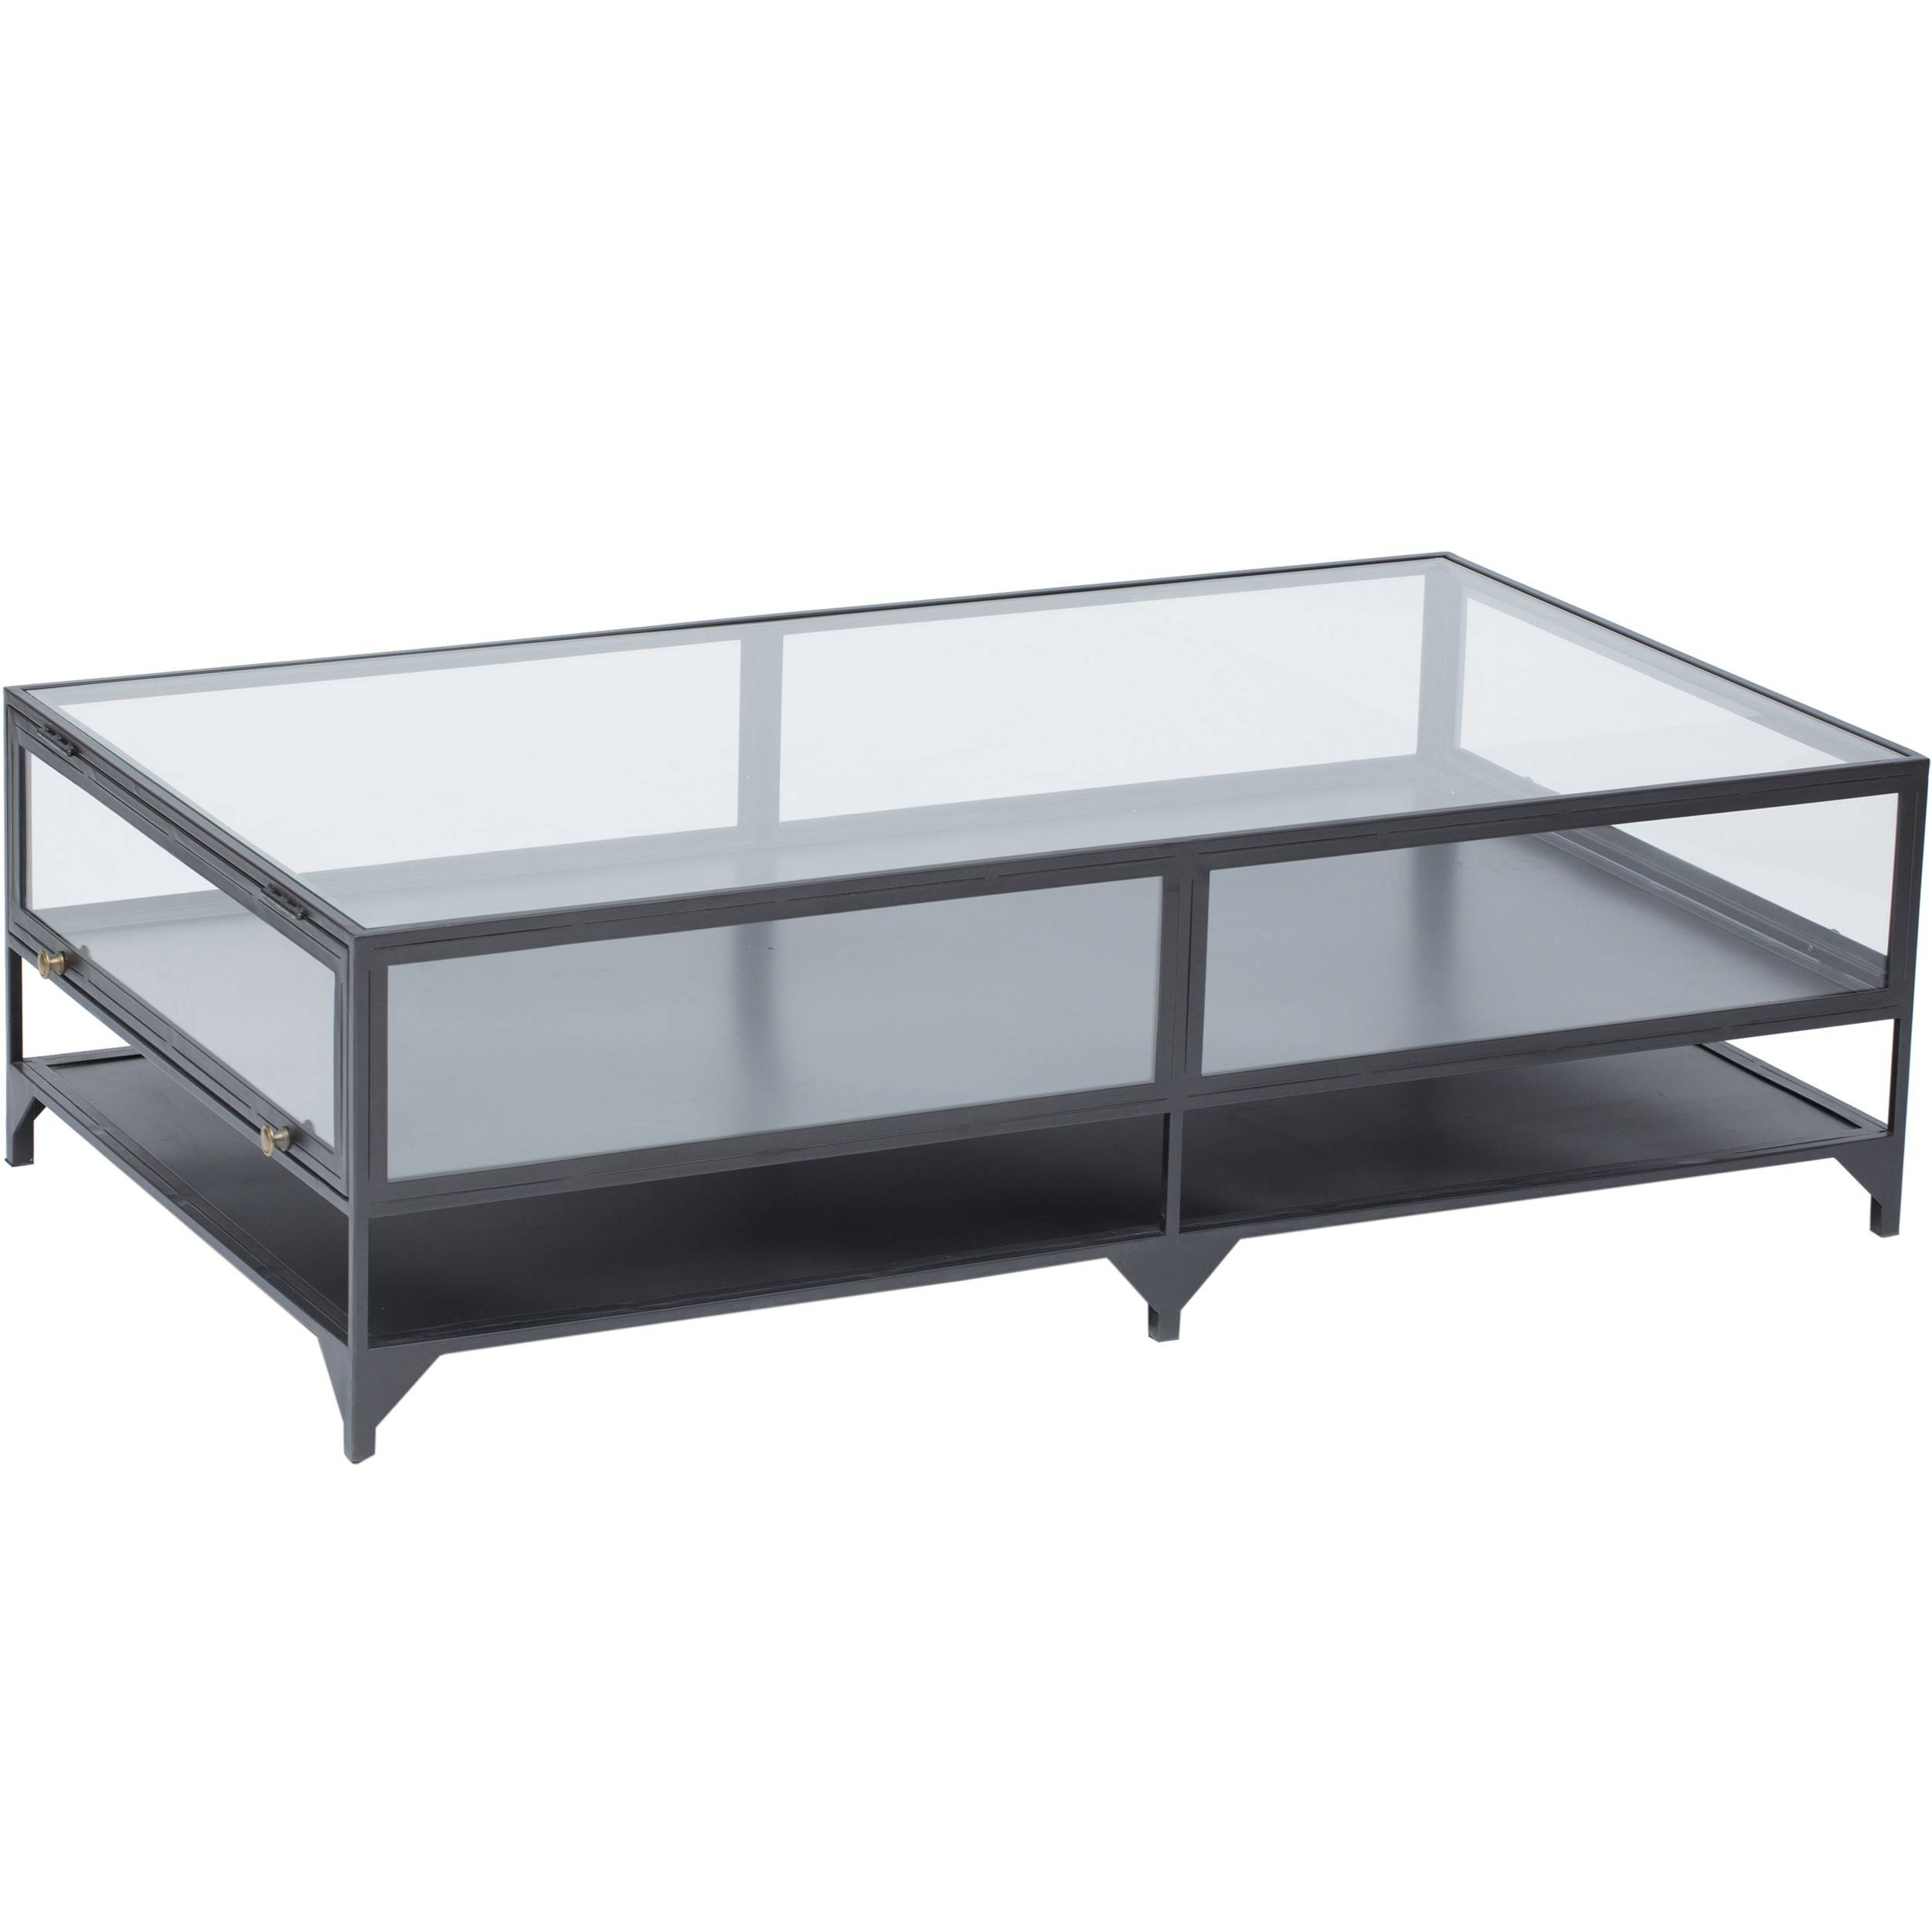 Coffee Table: Captivating Shadow Box Coffee Table Ideas Shadow Box pertaining to Steel and Glass Coffee Tables (Image 6 of 30)